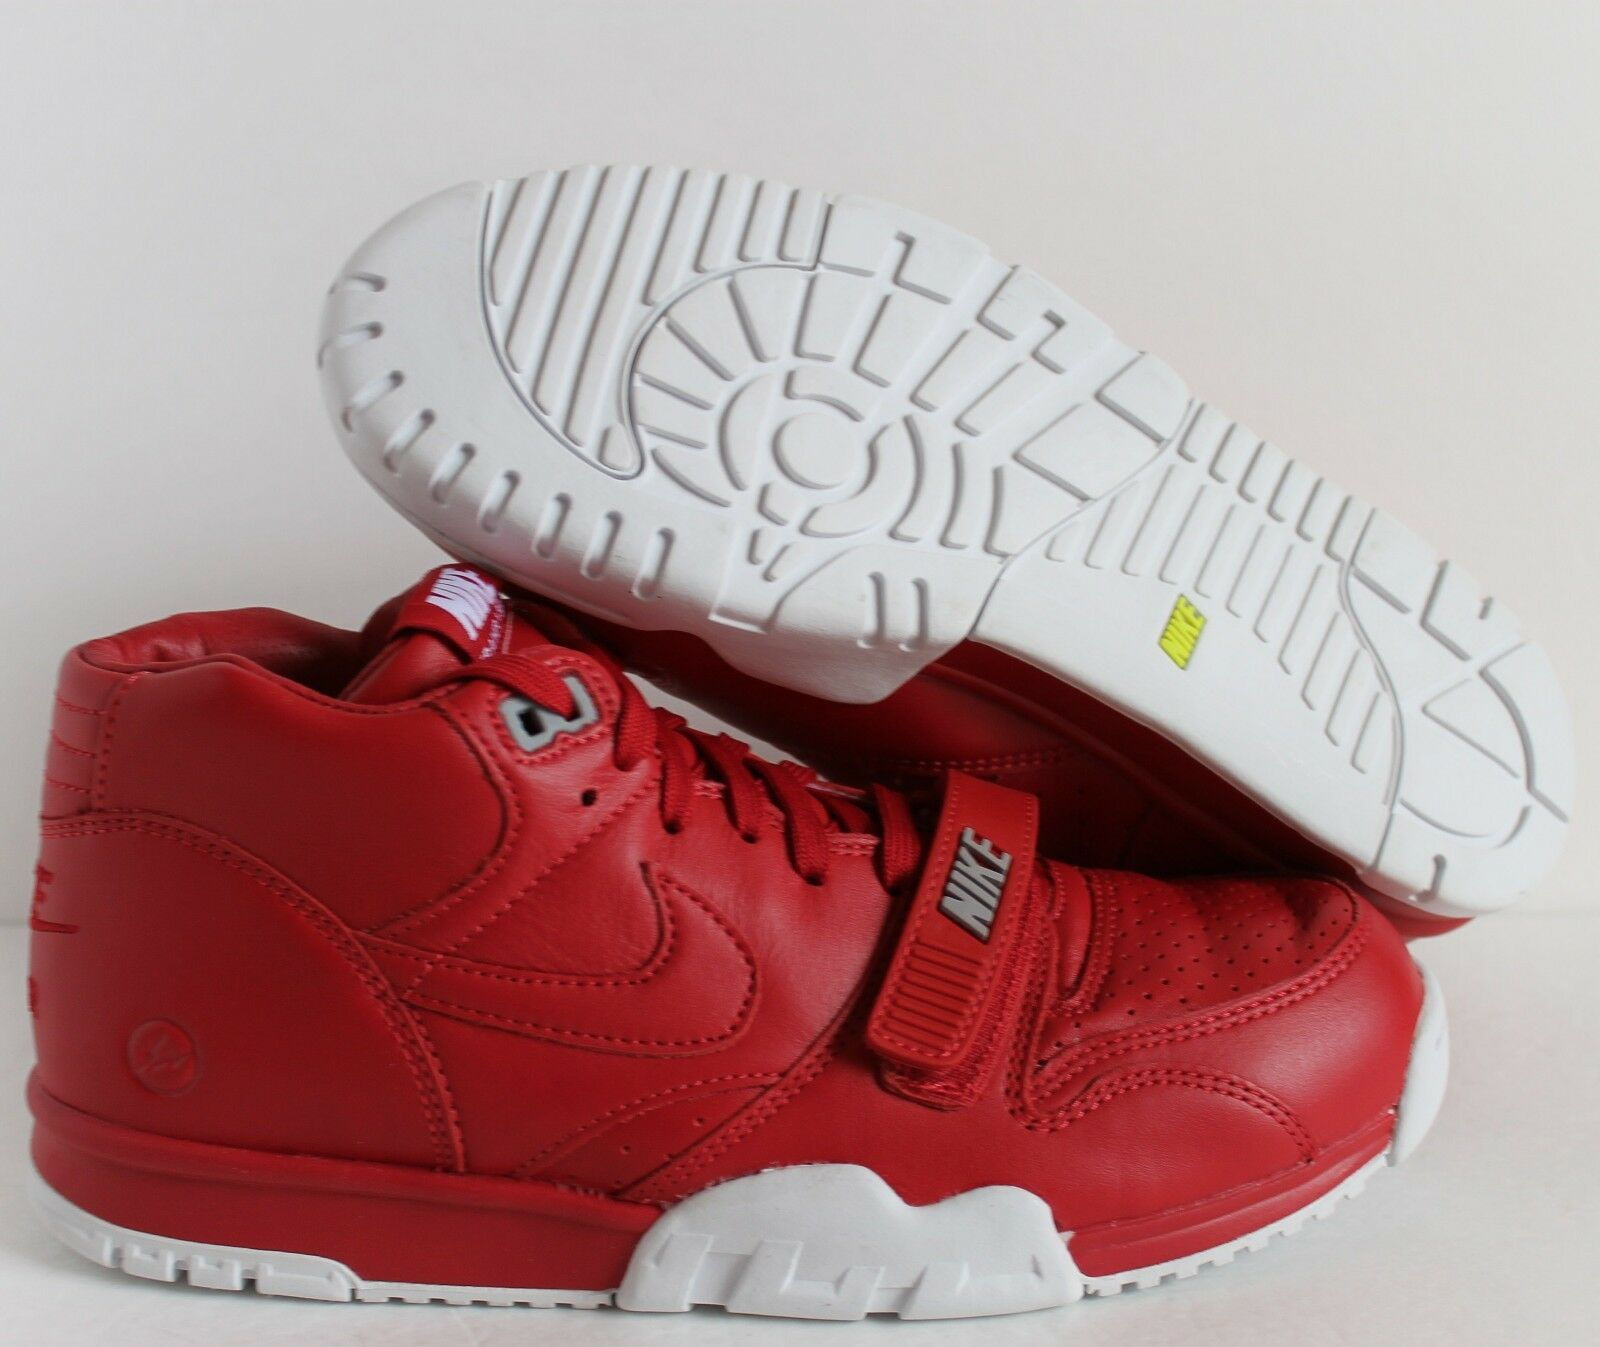 NIKE AIR TRAINER 1 MID SP/FRAGMENT GYM RED RED OCTOBER SZ 9.5  [806942-661]